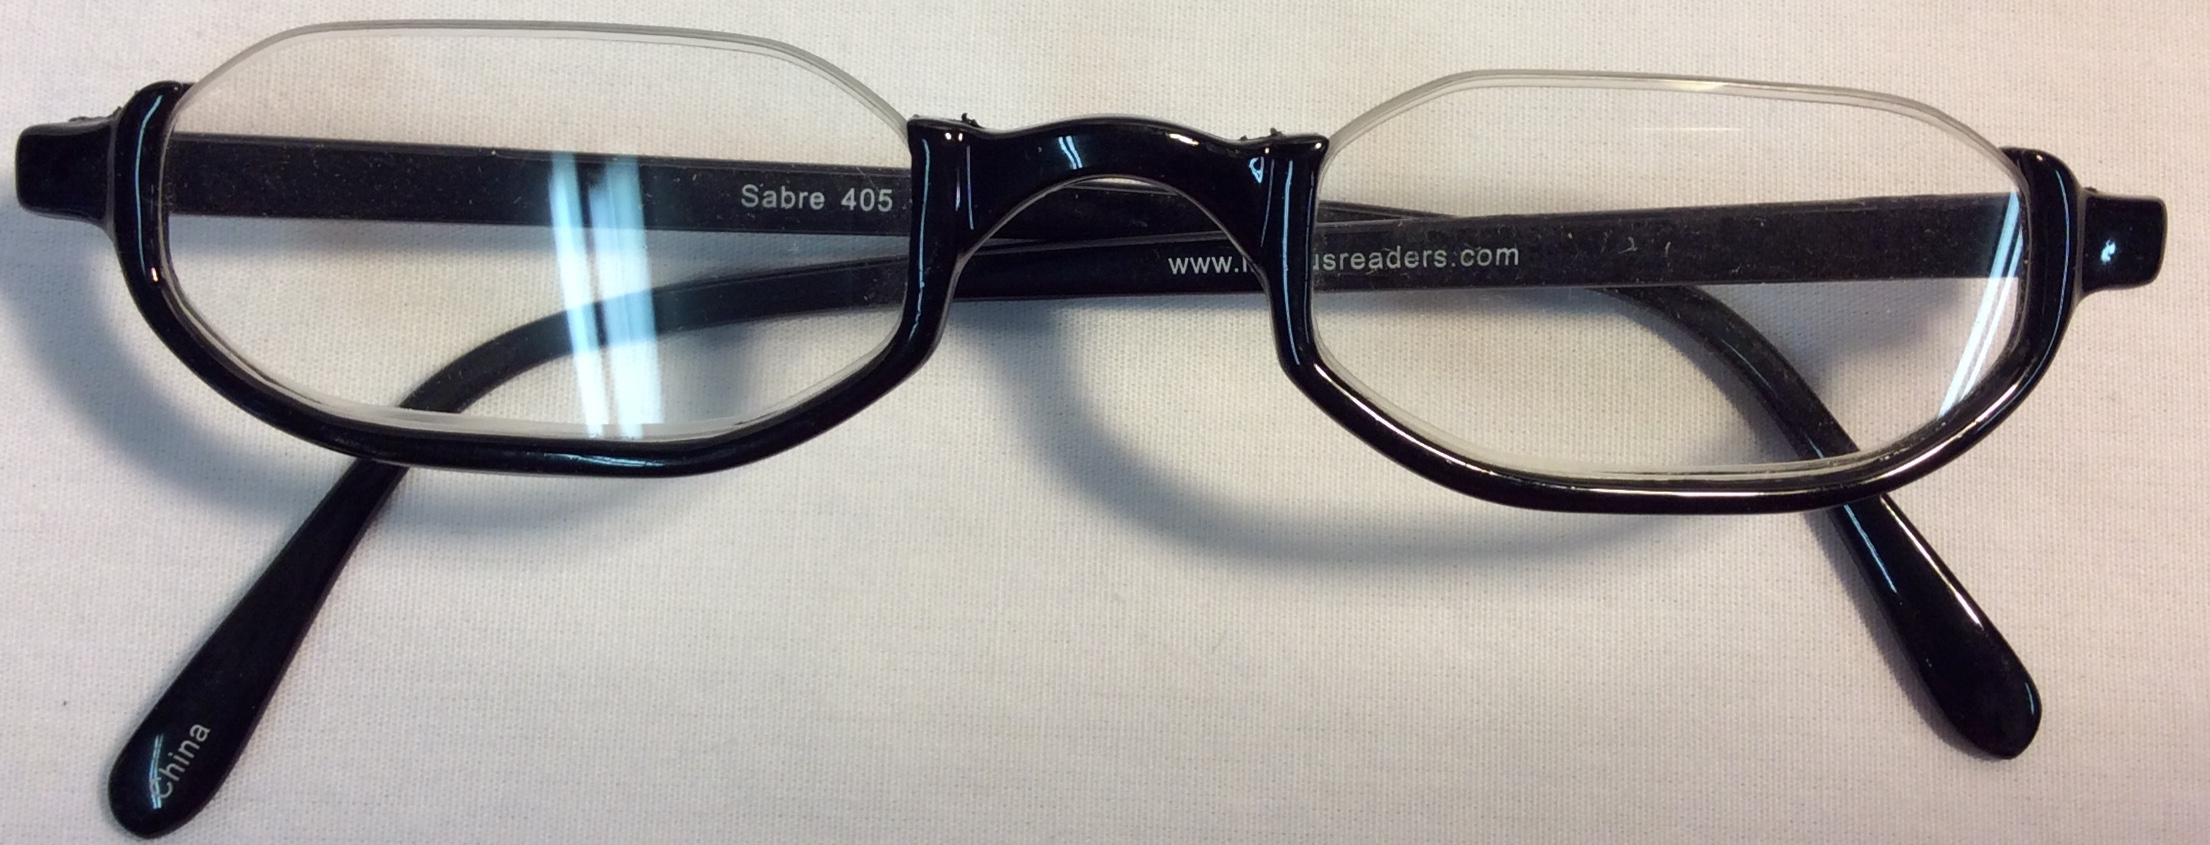 Reading glasses with half frame in black